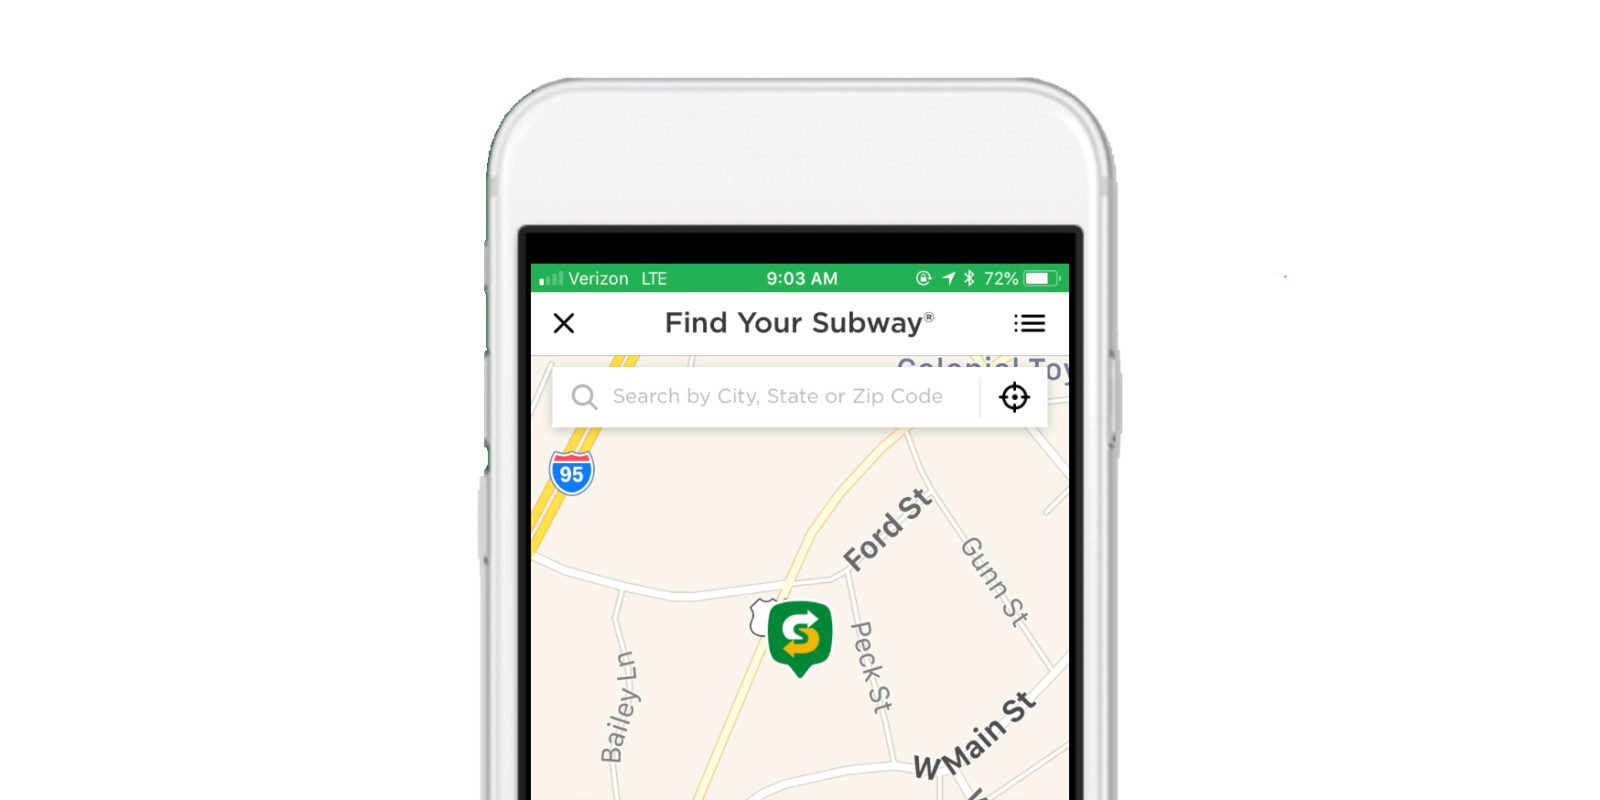 Download this app and get a $6 Subway credit